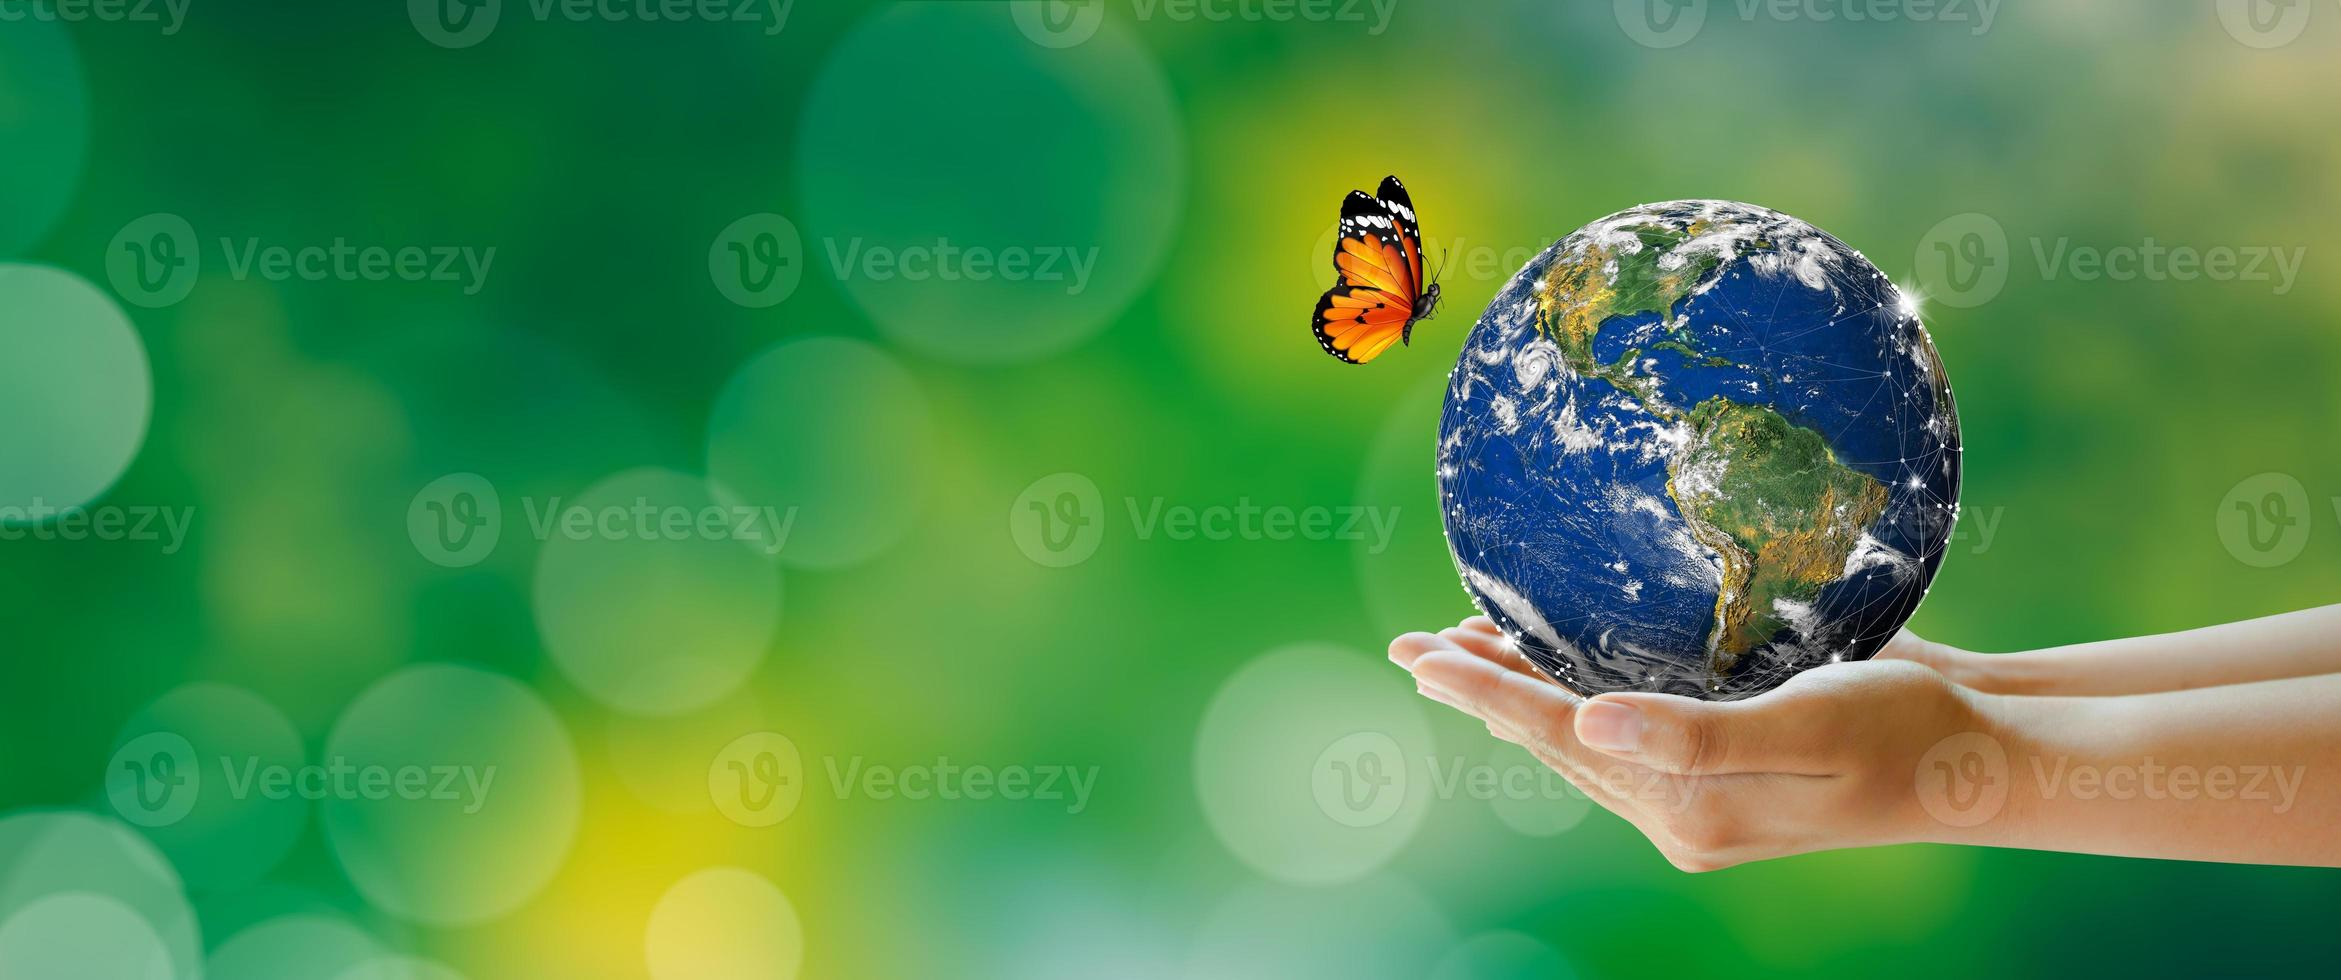 Hand holding earth with butterfly over green blur background photo